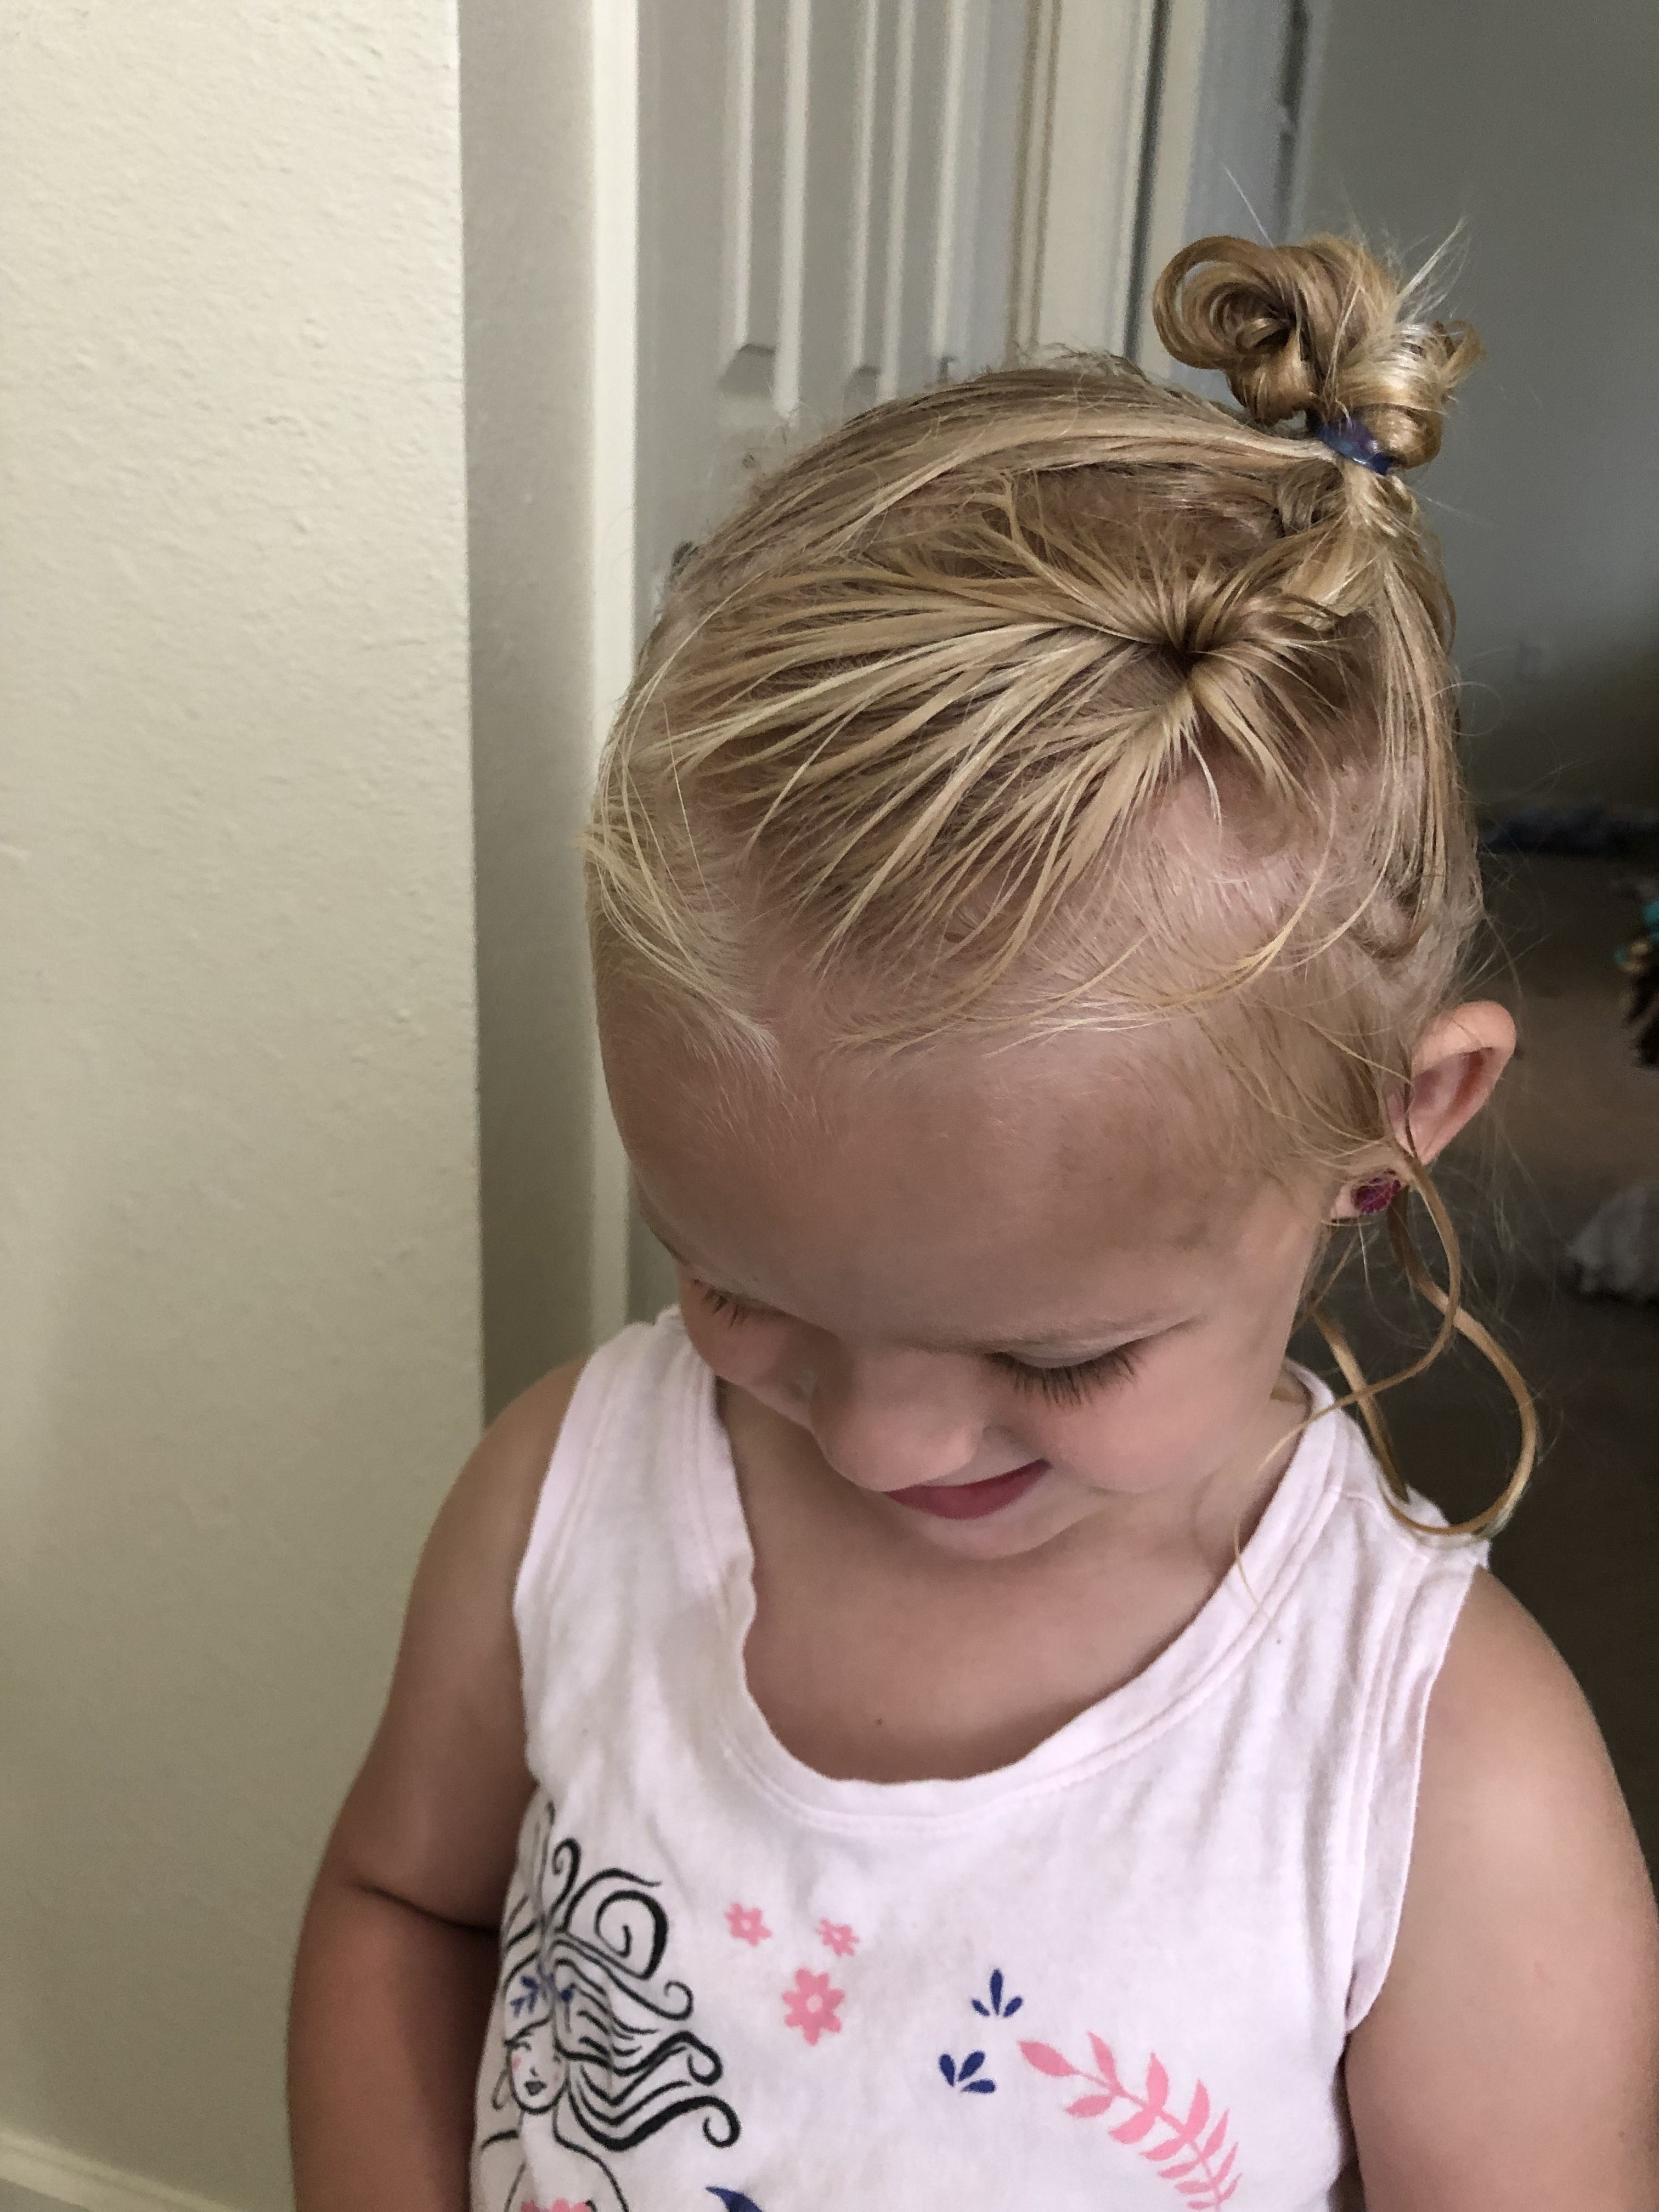 Topsy Tail Hairstyles For Toddlers 2021